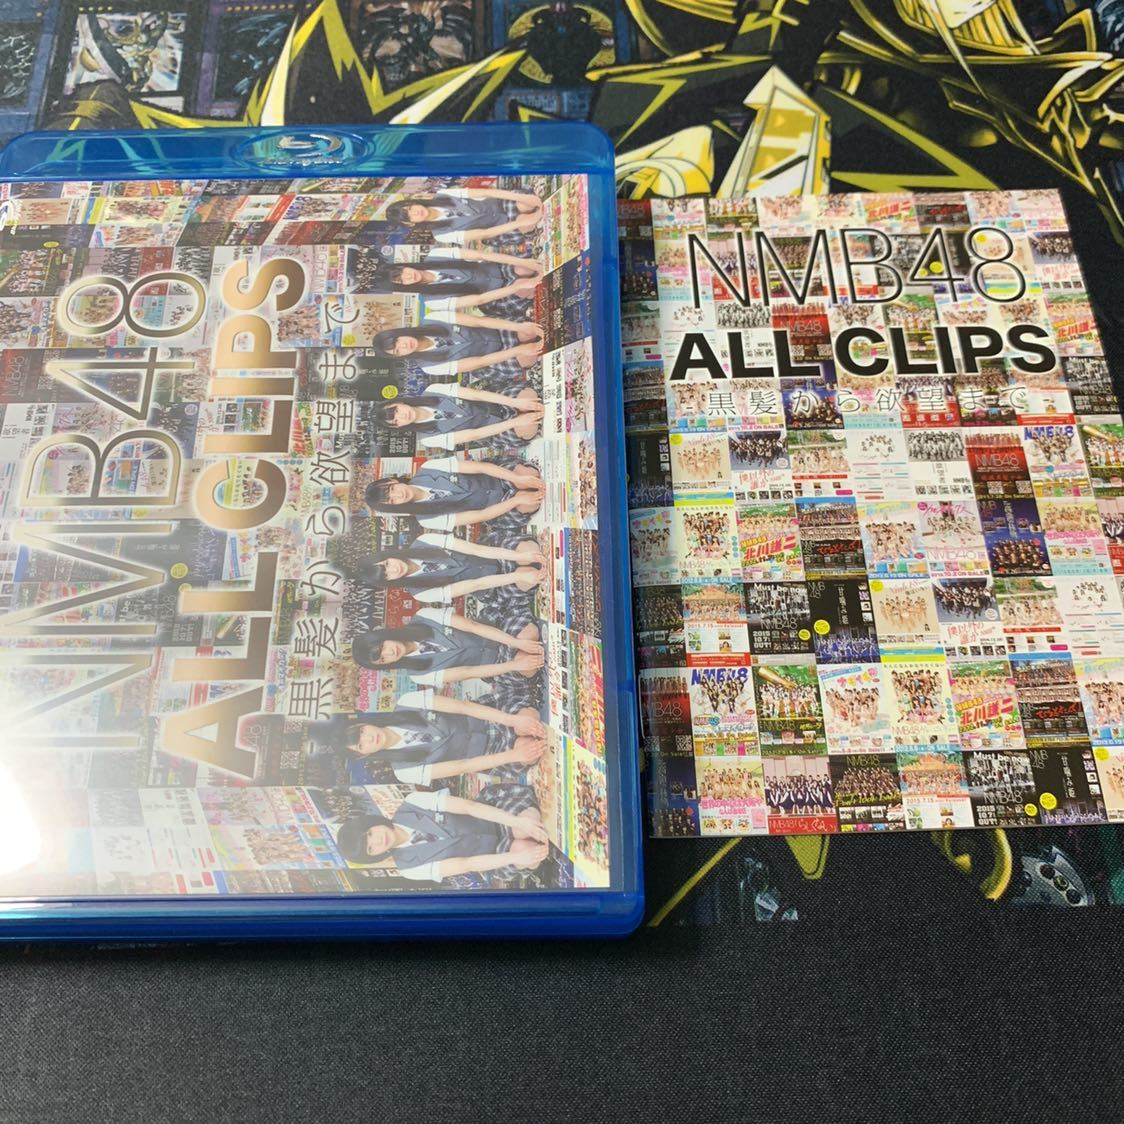 NMB48 ALL CLIPS -黒髮から欲望まで- Blu-ray 山本彩